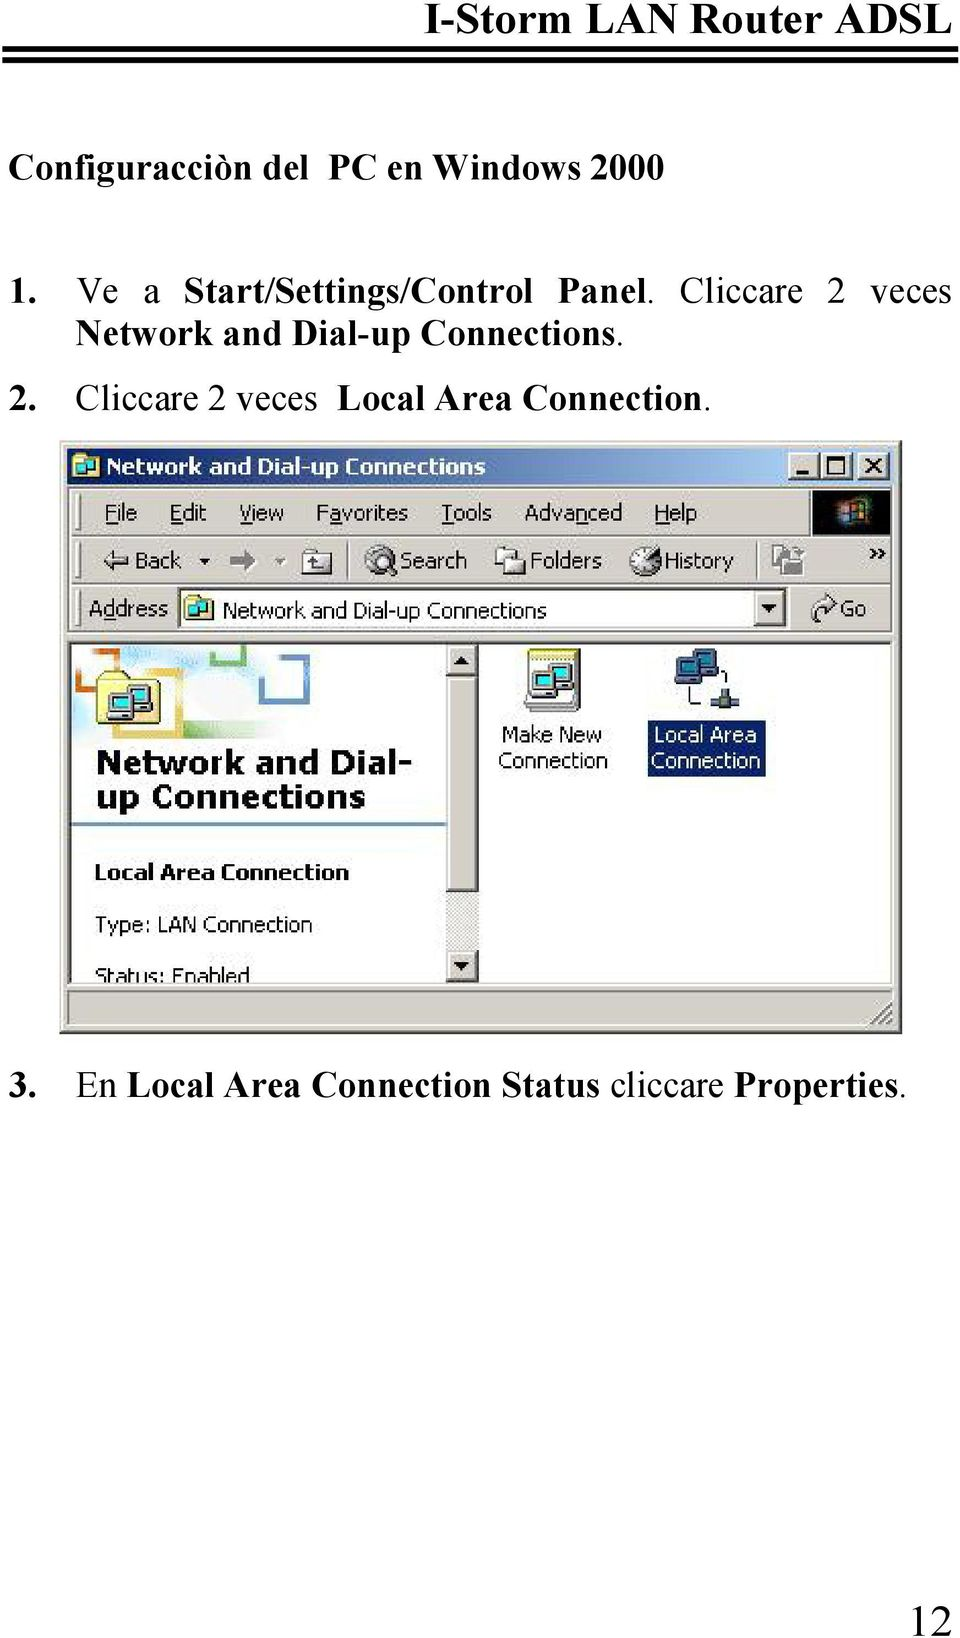 Cliccare 2 veces Network and Dial-up Connections. 2. Cliccare 2 veces Local Area Connection.